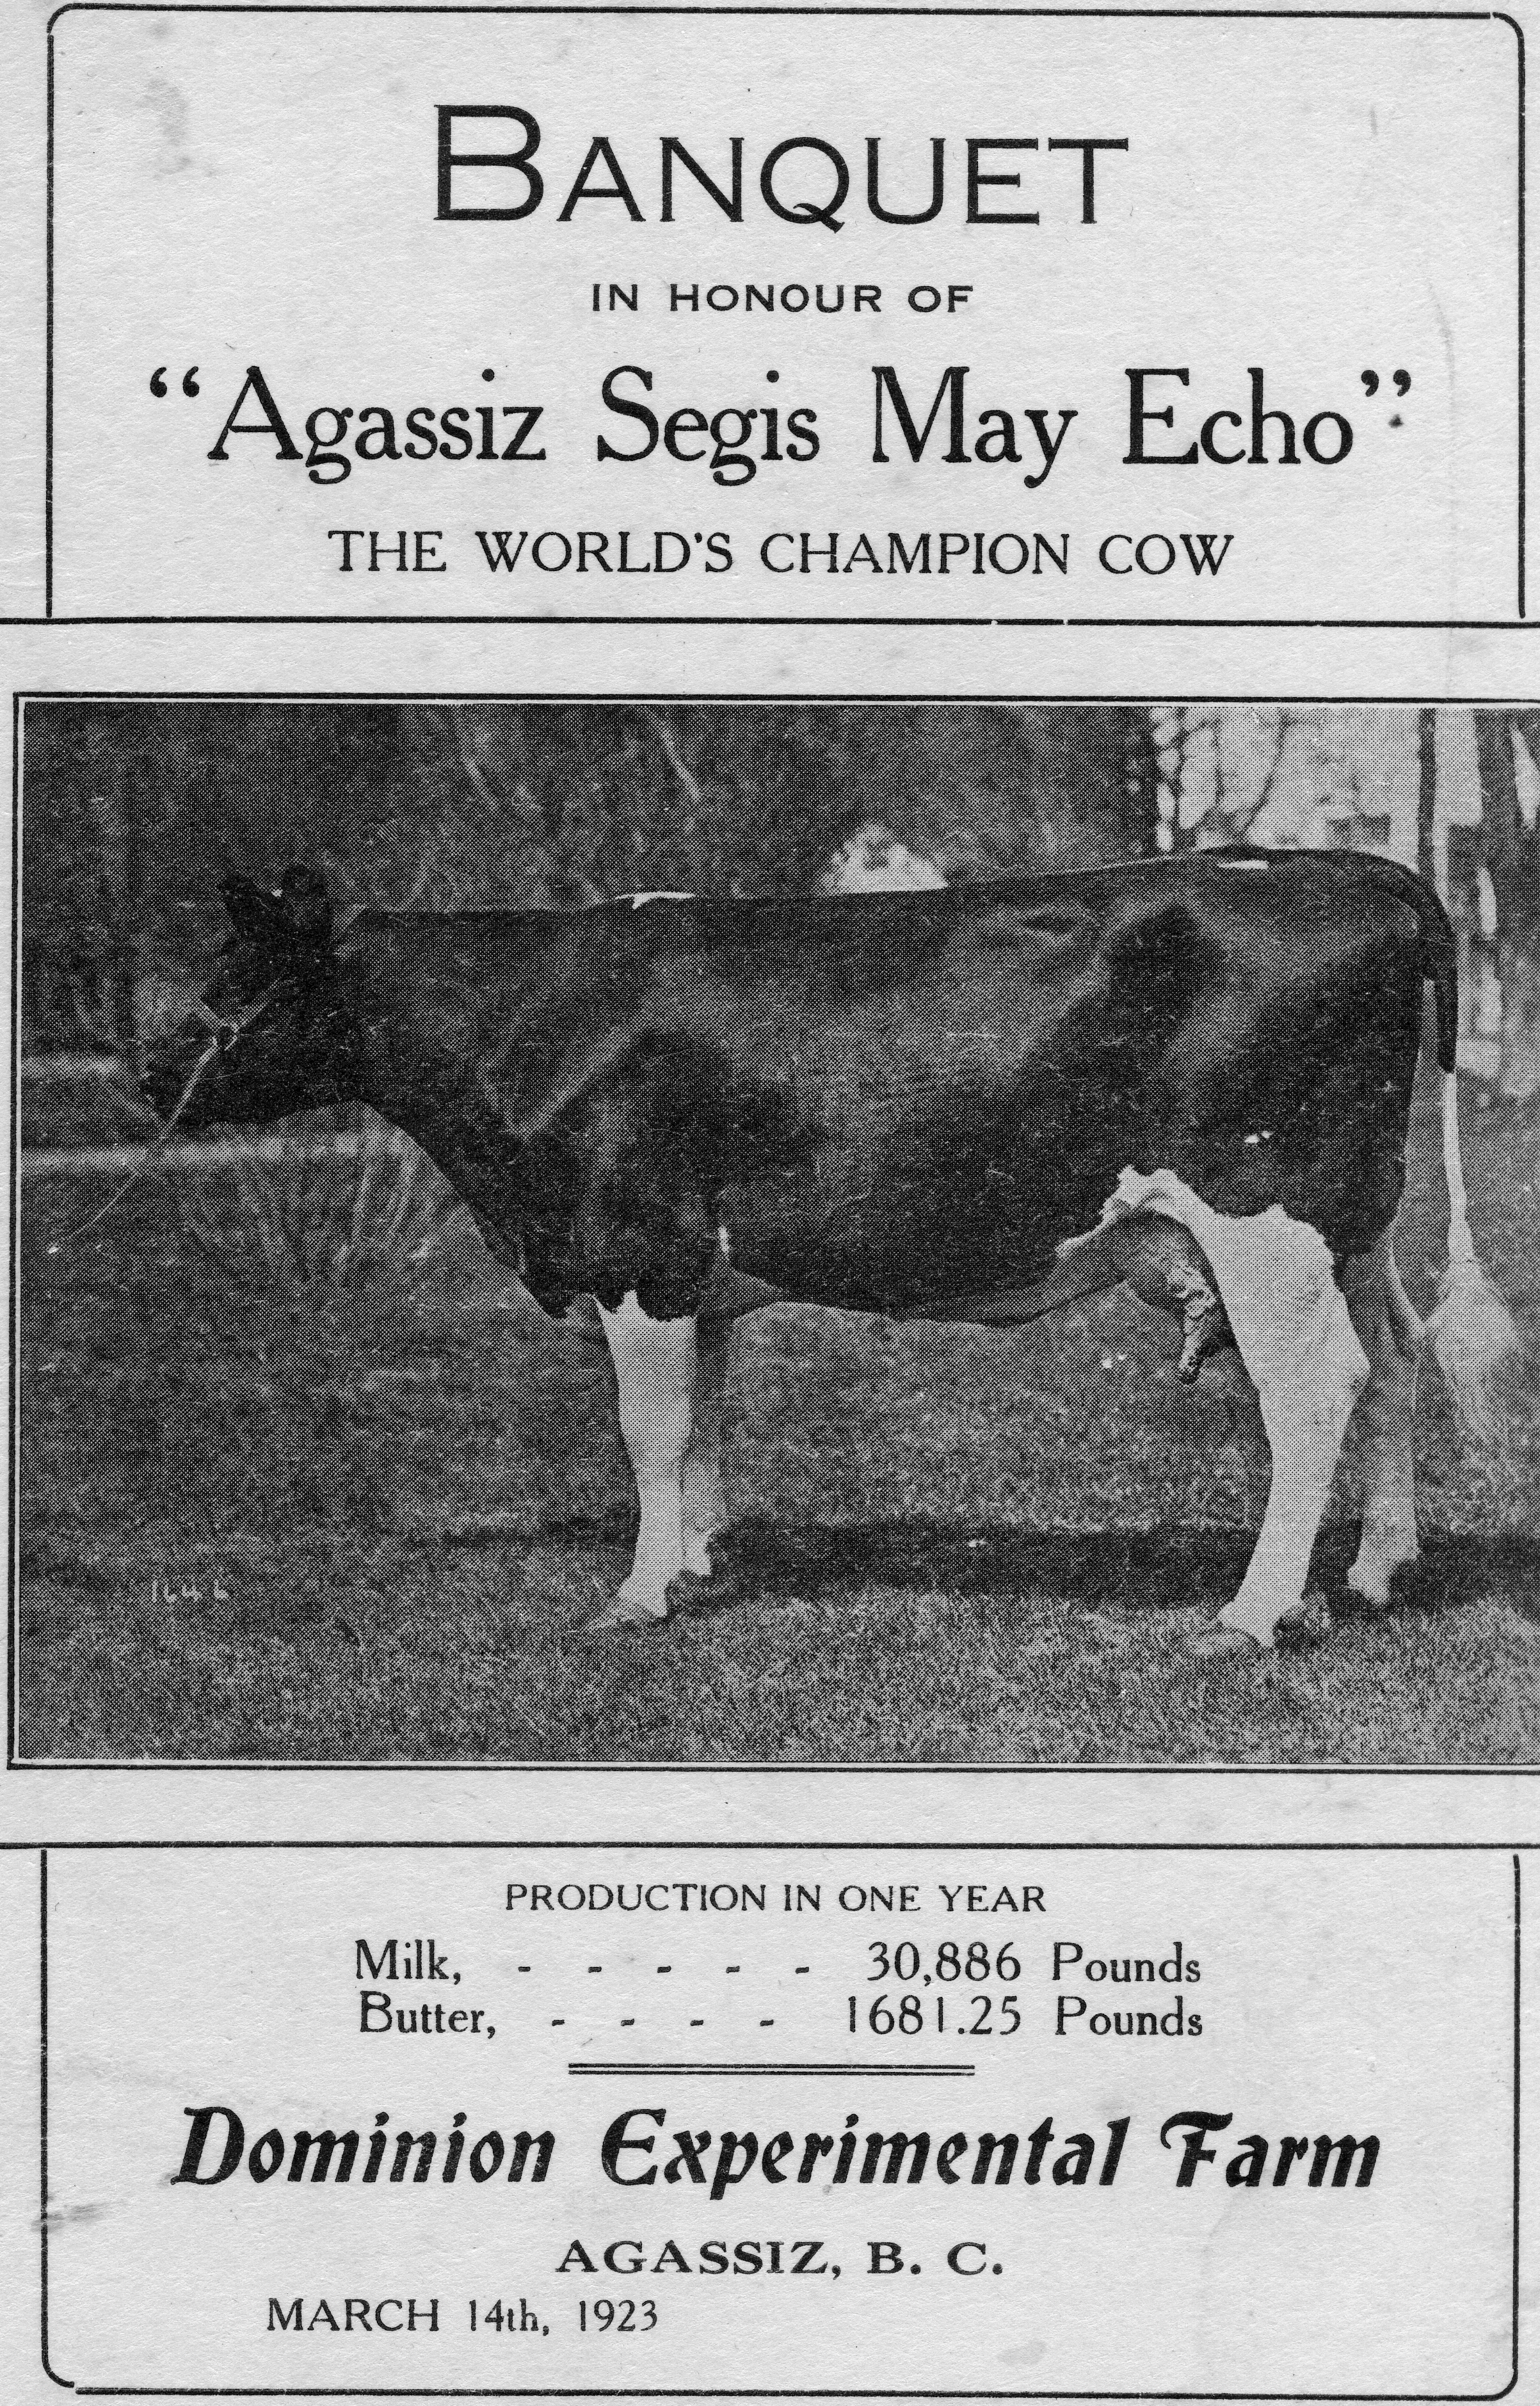 Black and white image of the banquet program for Agassiz Segis May Echo. Includes a picture of the champion cow, 1923.